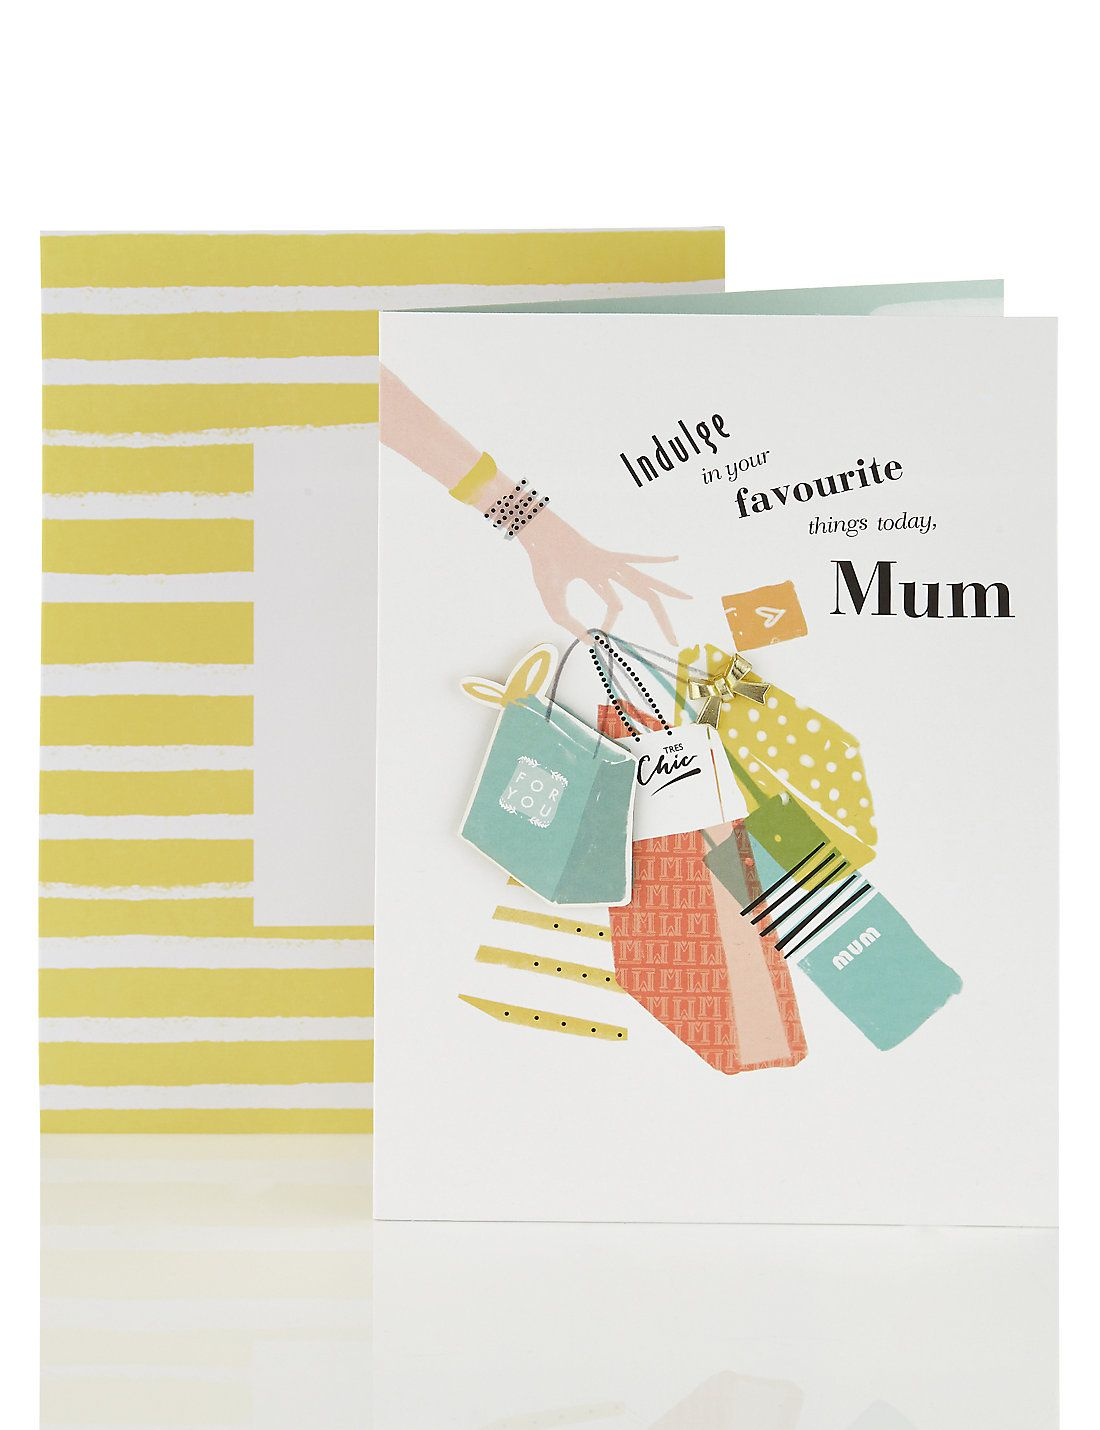 Mum Loves To Shop Birthday Card M S Birthday Cards Inspirational Cards Shopping Card